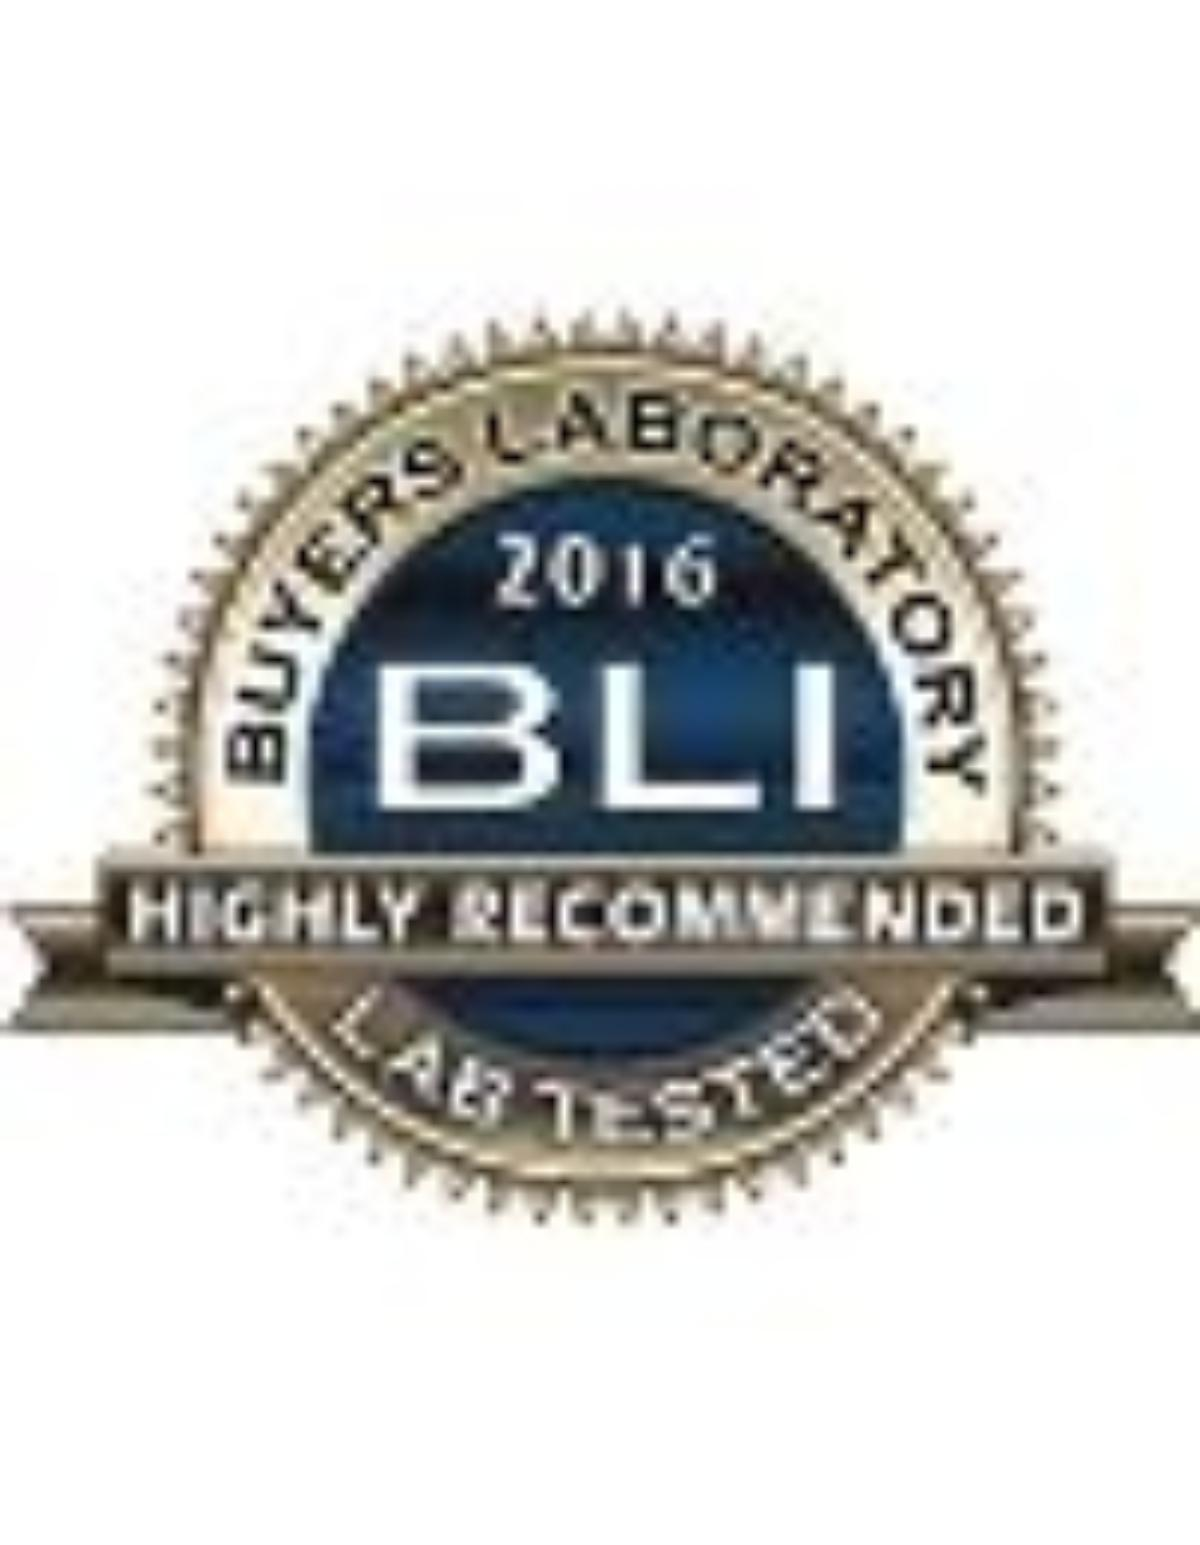 2016_bli_hilghly_recommended_-awards-Single-Thumb_awards.jpg